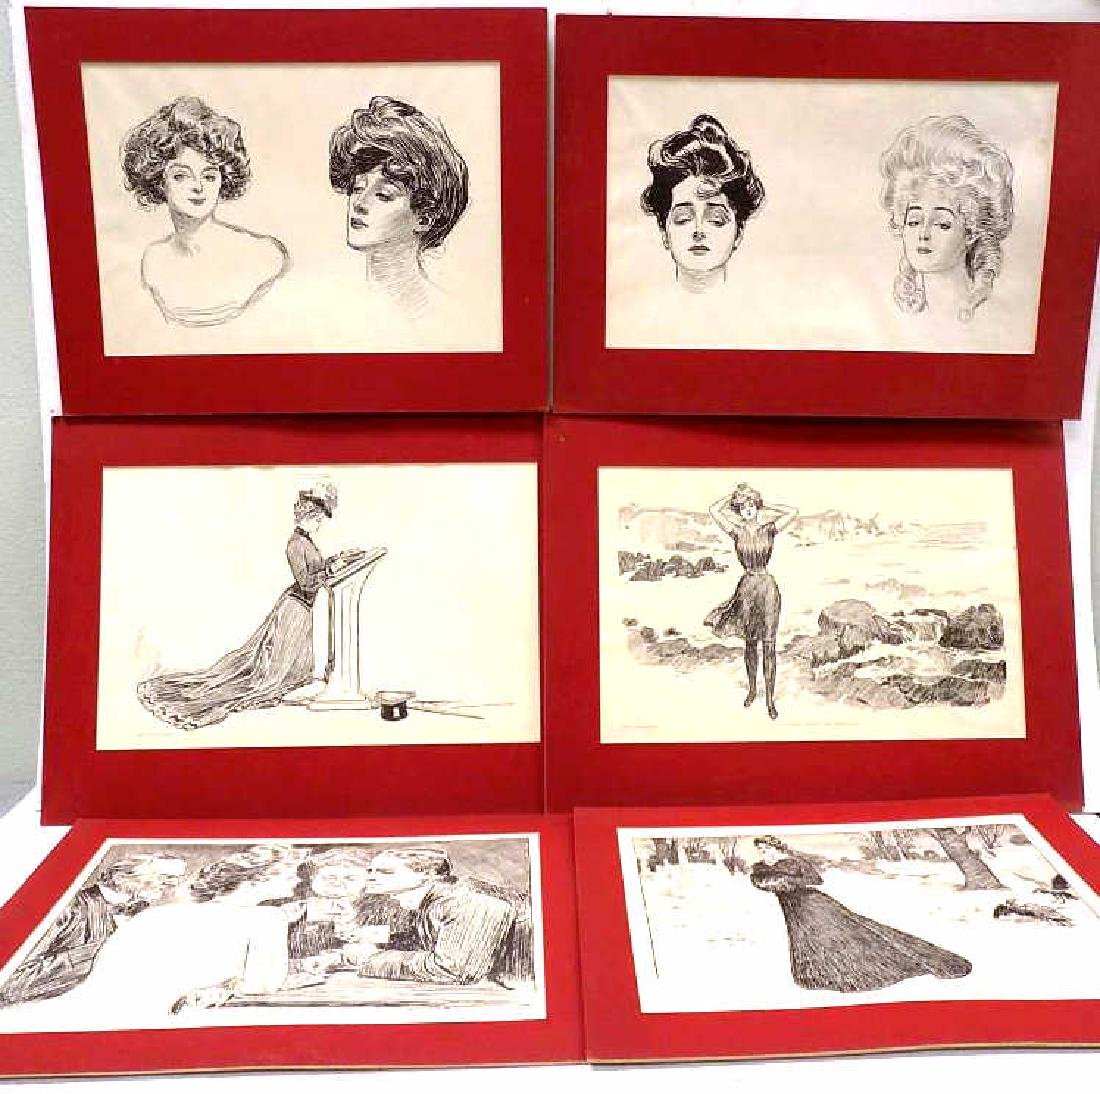 CHARLES DANA GIBSON - GROUP OF 6 LITHOGRAPHS